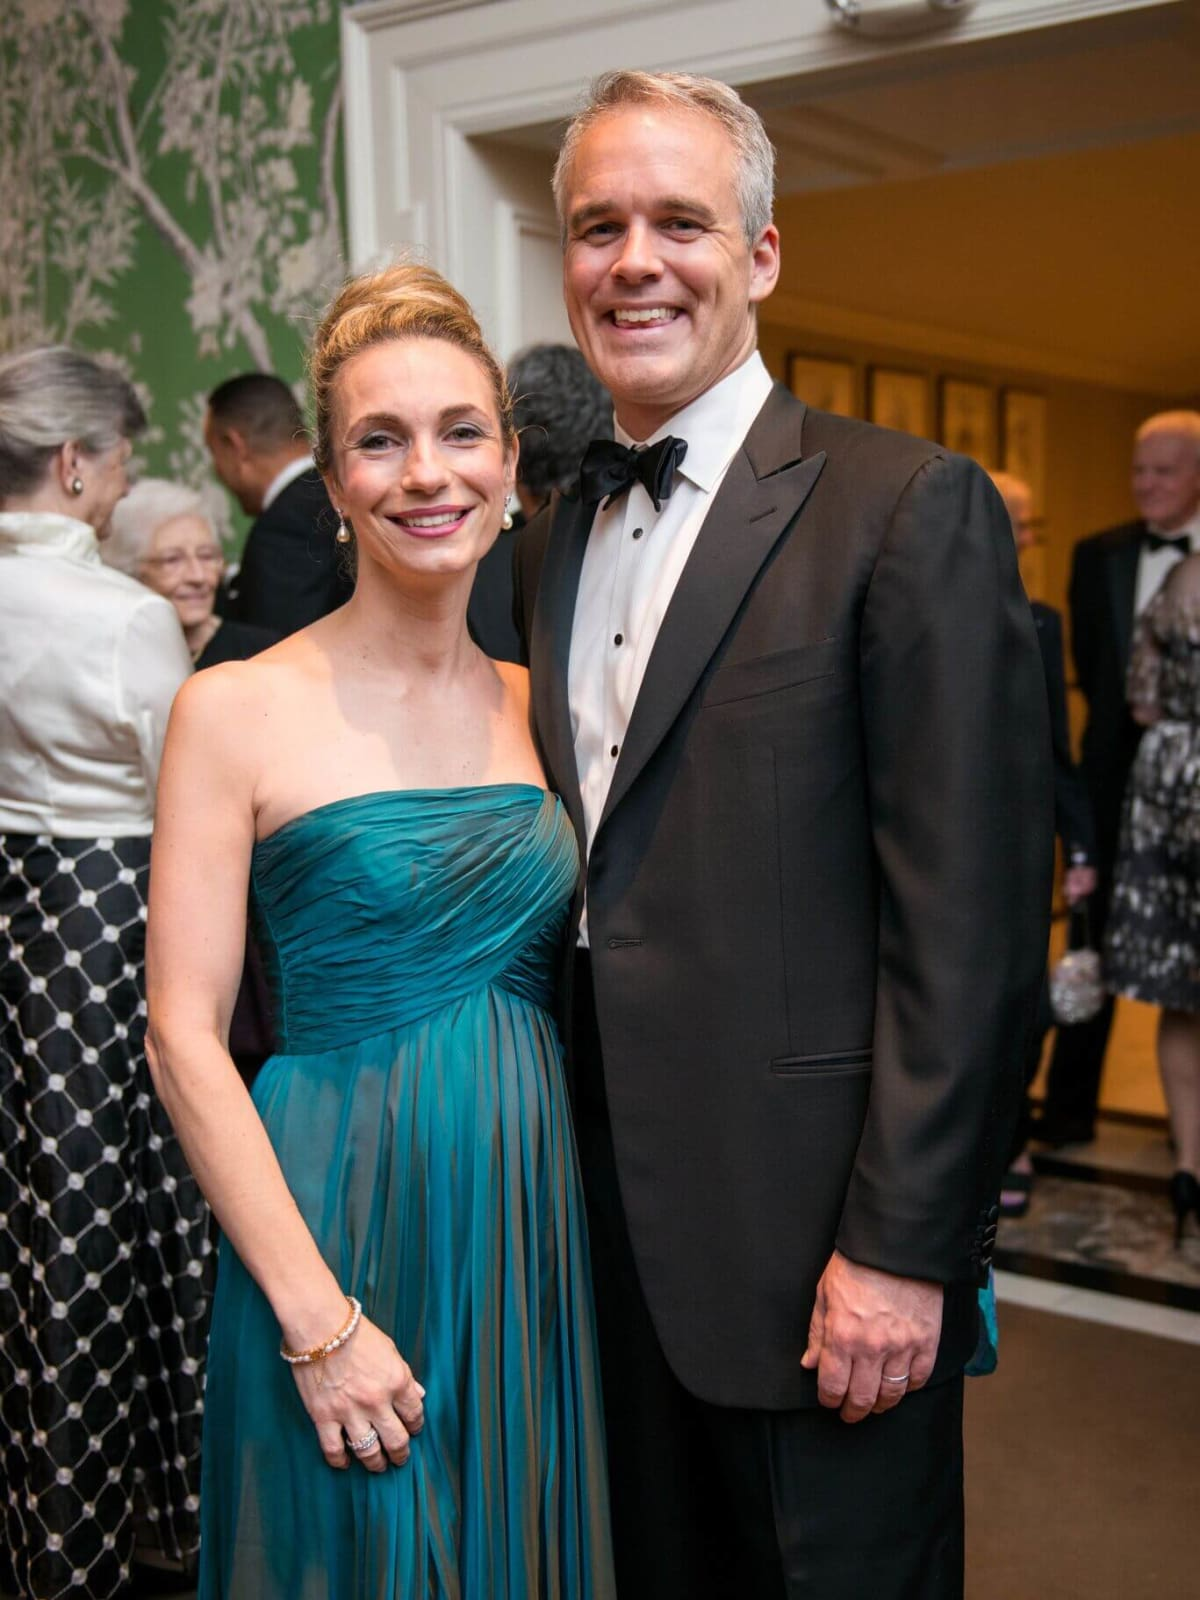 Collette Collins, Bob Collins at Rice Honors Gala